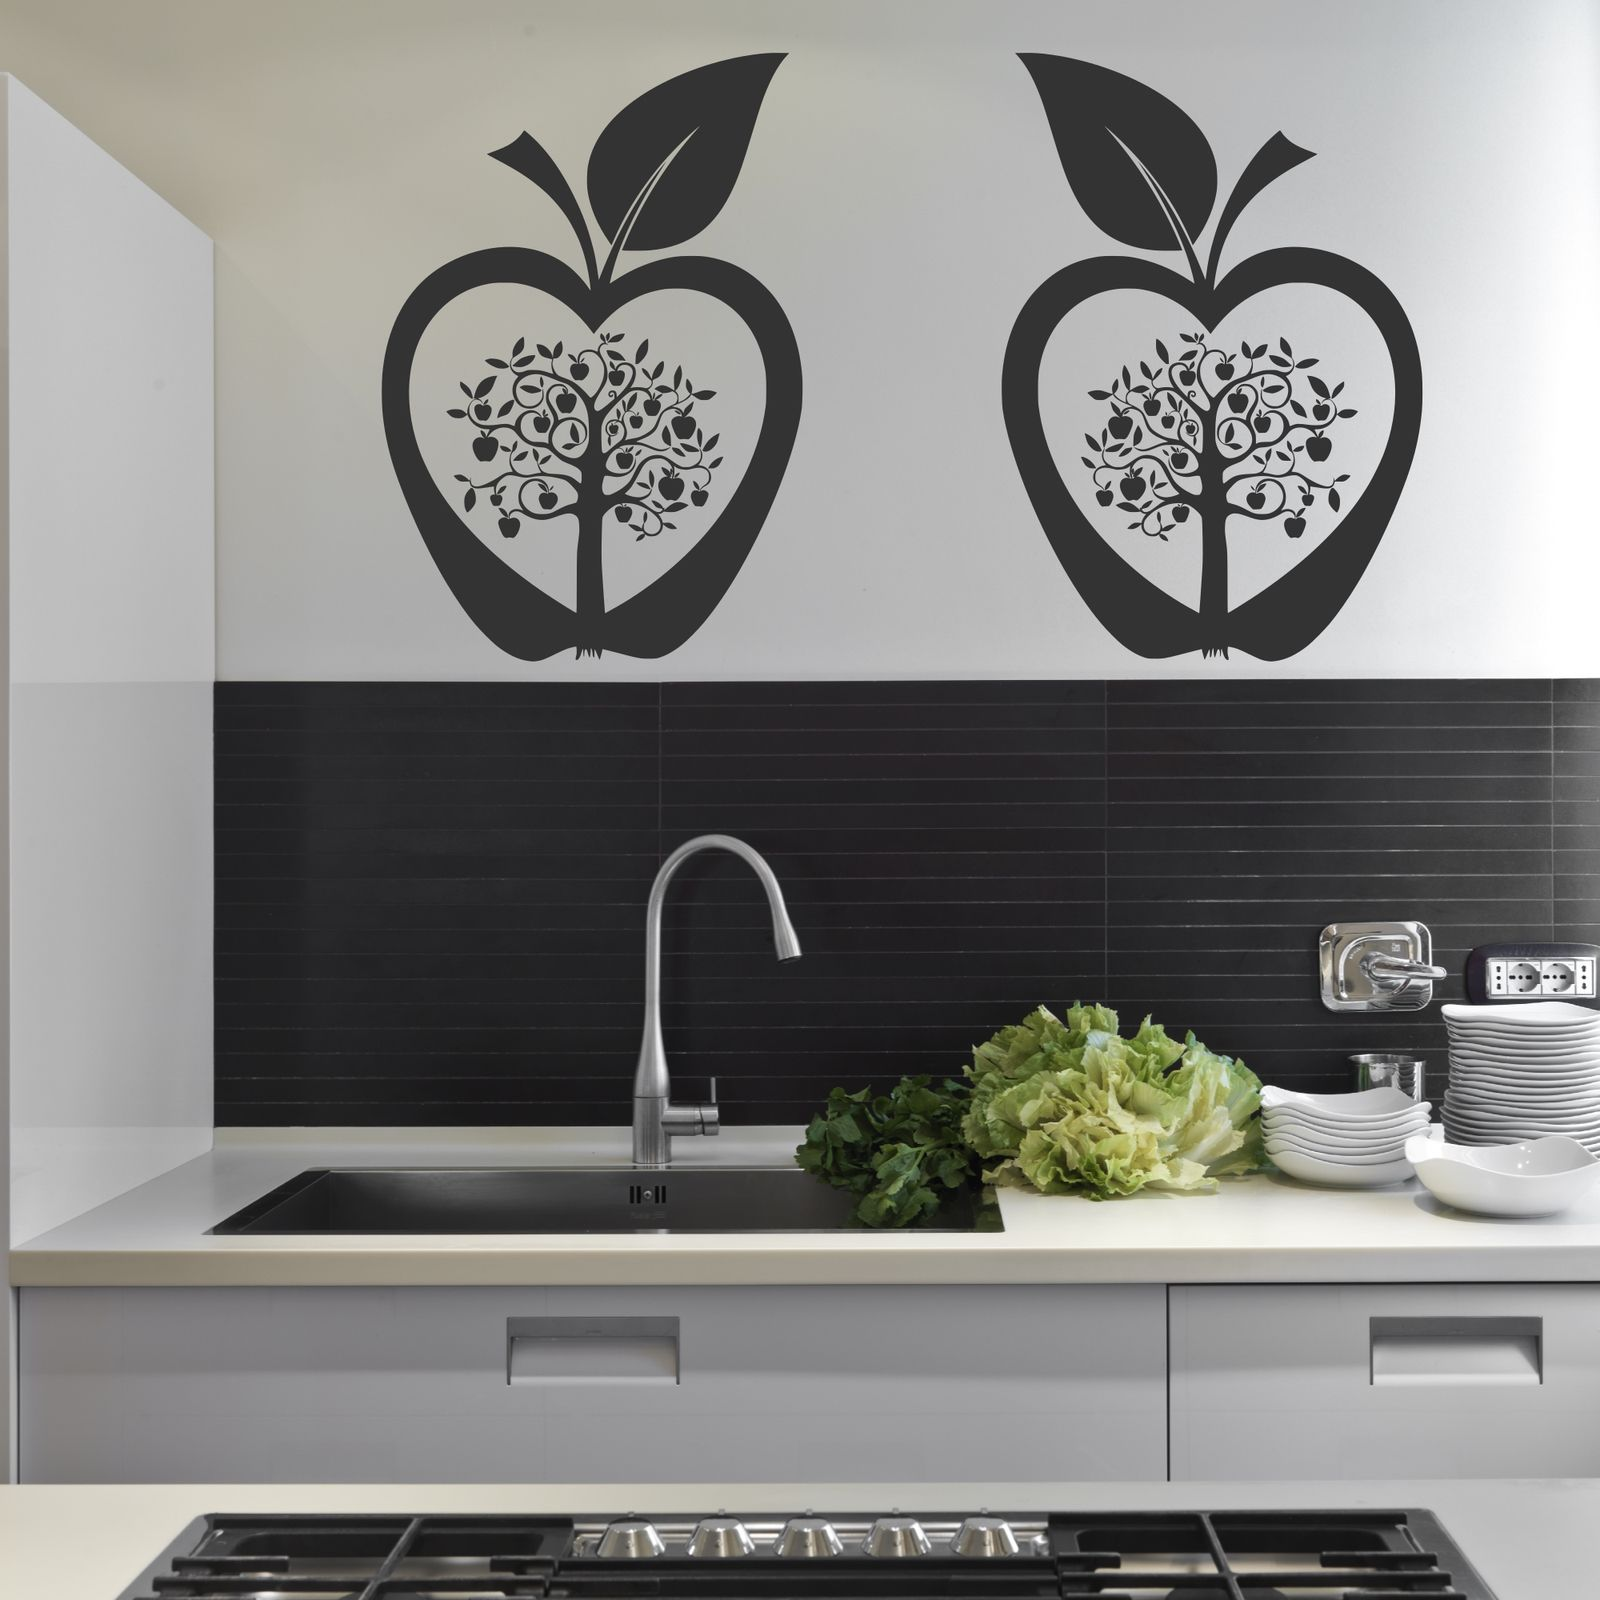 Kitchen Mural Kitchen Apple Tree Flower Modern Wall Art Sticker Decal Transfer